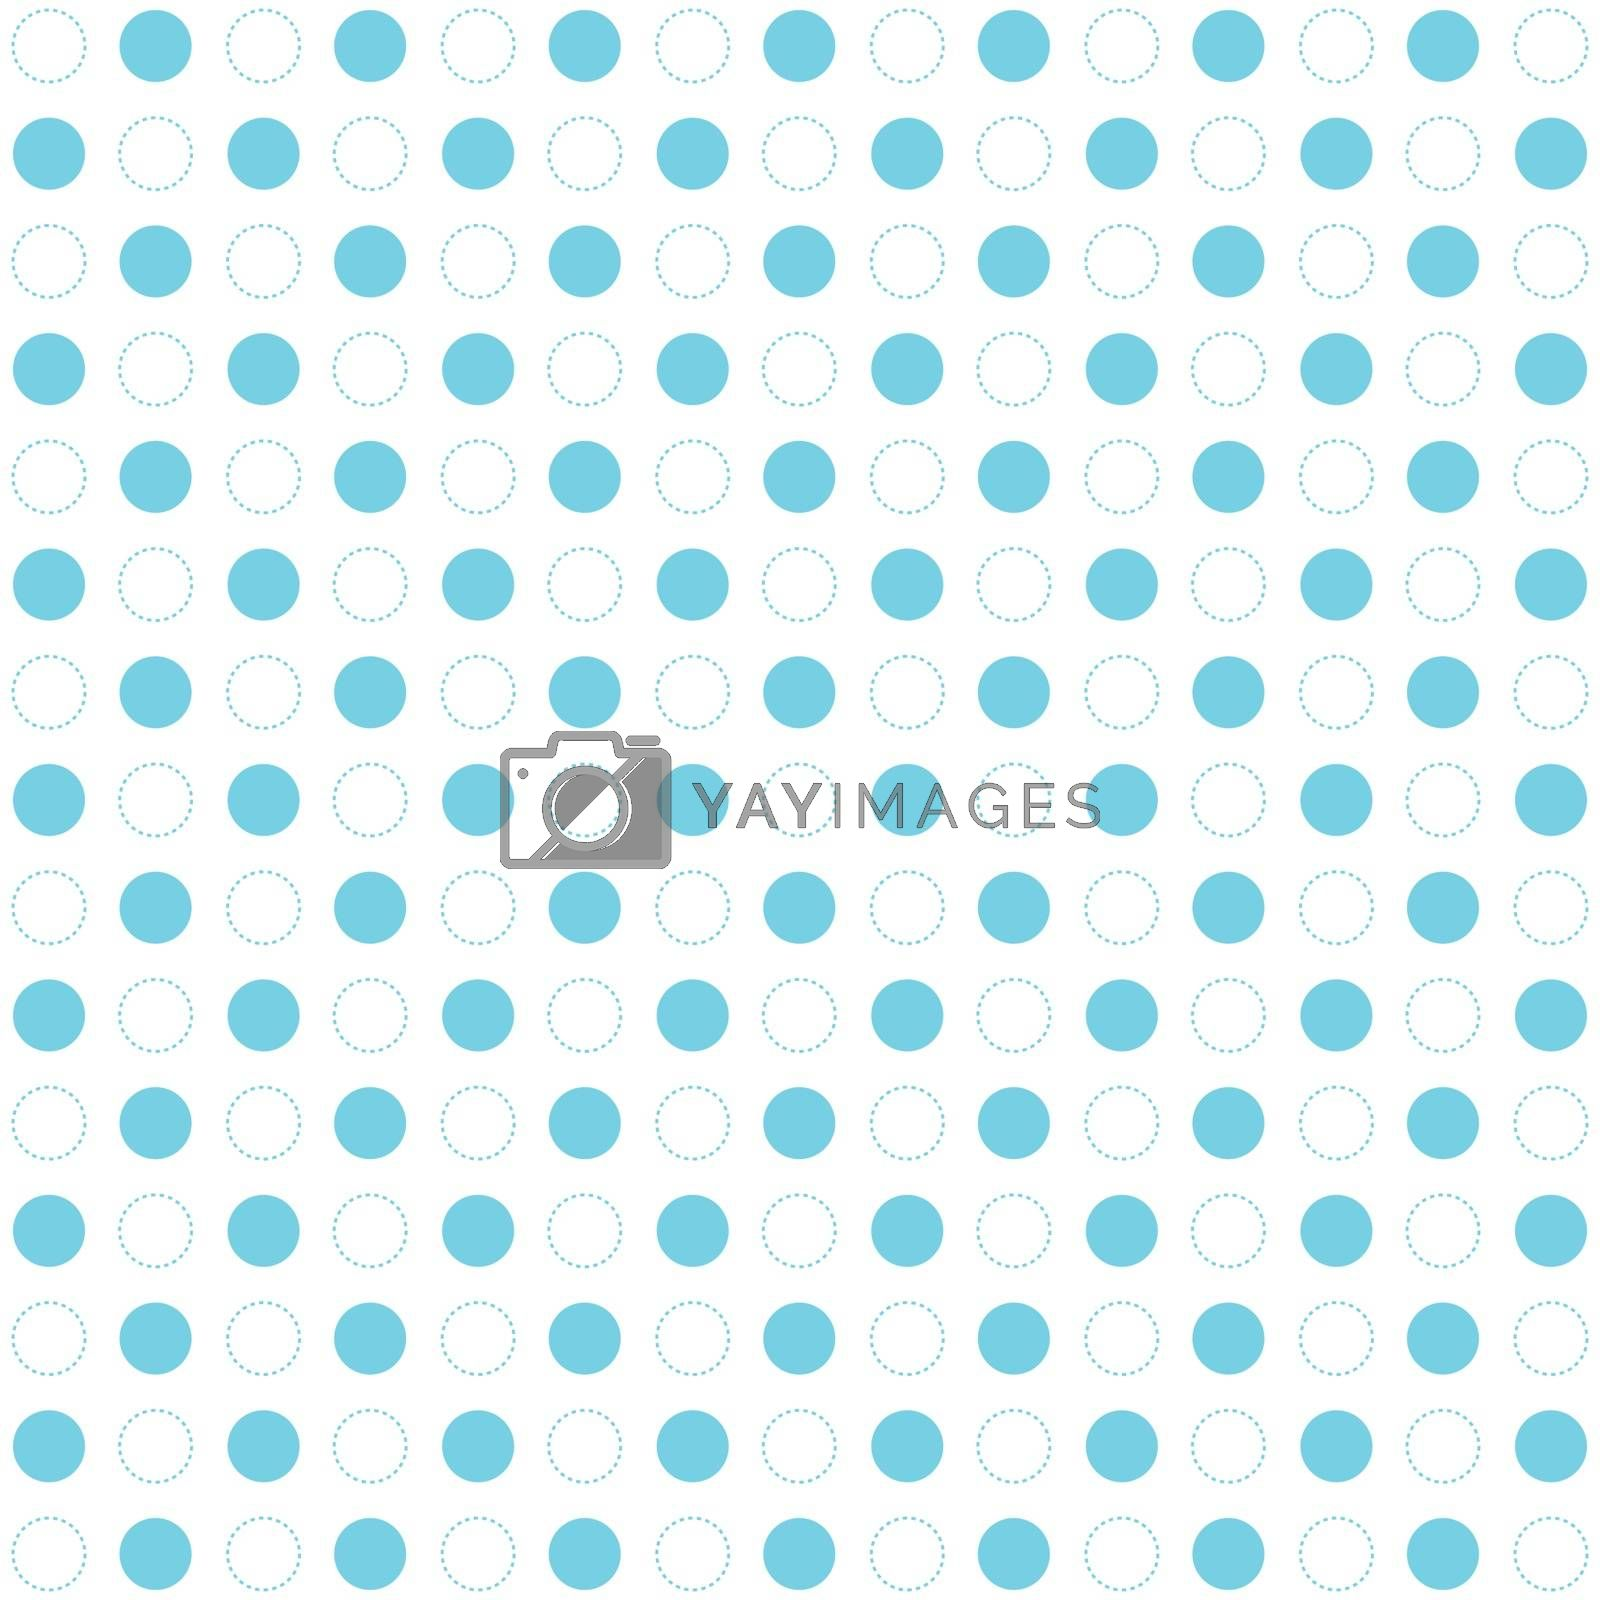 Blue polka dots seamless pattern on white background. Retro circles geometric dashed lines. Vector illustration